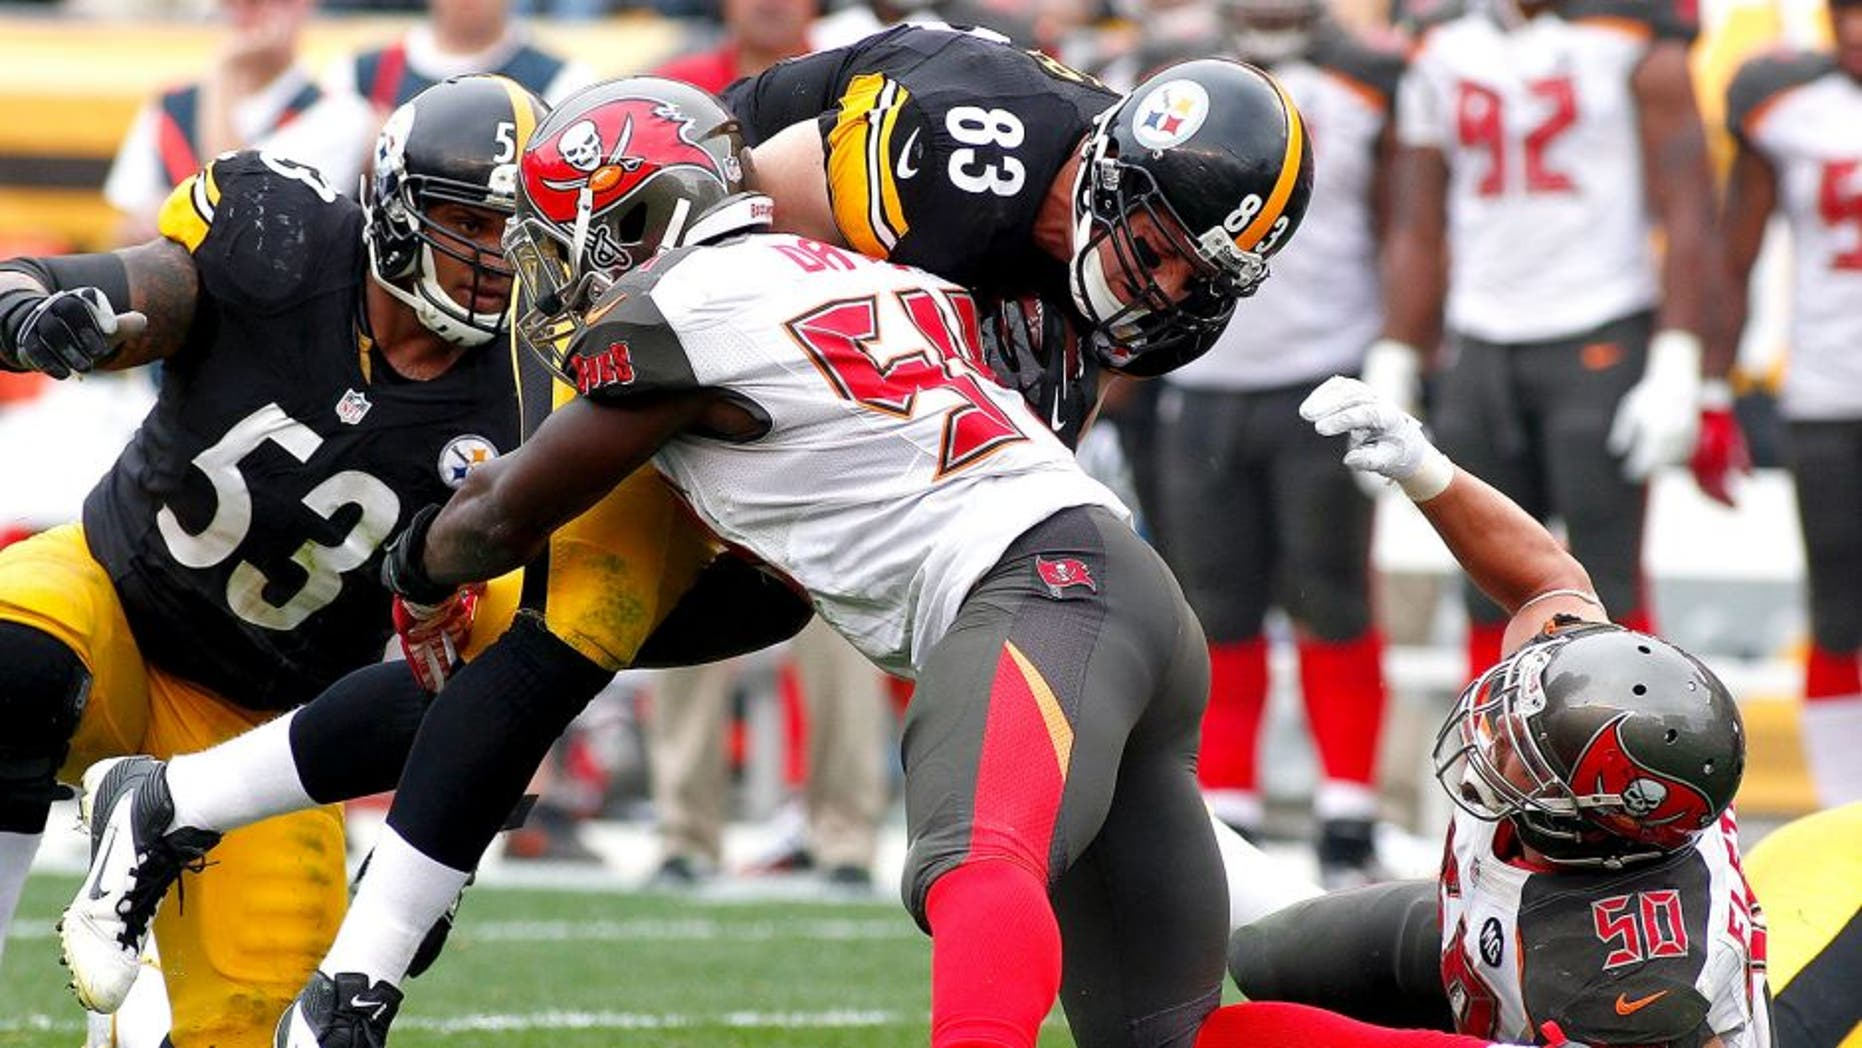 PITTSBURGH, PA - SEPTEMBER 28: Heath Miller #83 of the Pittsburgh Steelers gets tackled by Lavonte David #54 of the Tampa Bay Buccaneers during the second quarter at Heinz Field on September 28, 2014 in Pittsburgh, Pennsylvania. (Photo by Justin K. Aller/Getty Images)